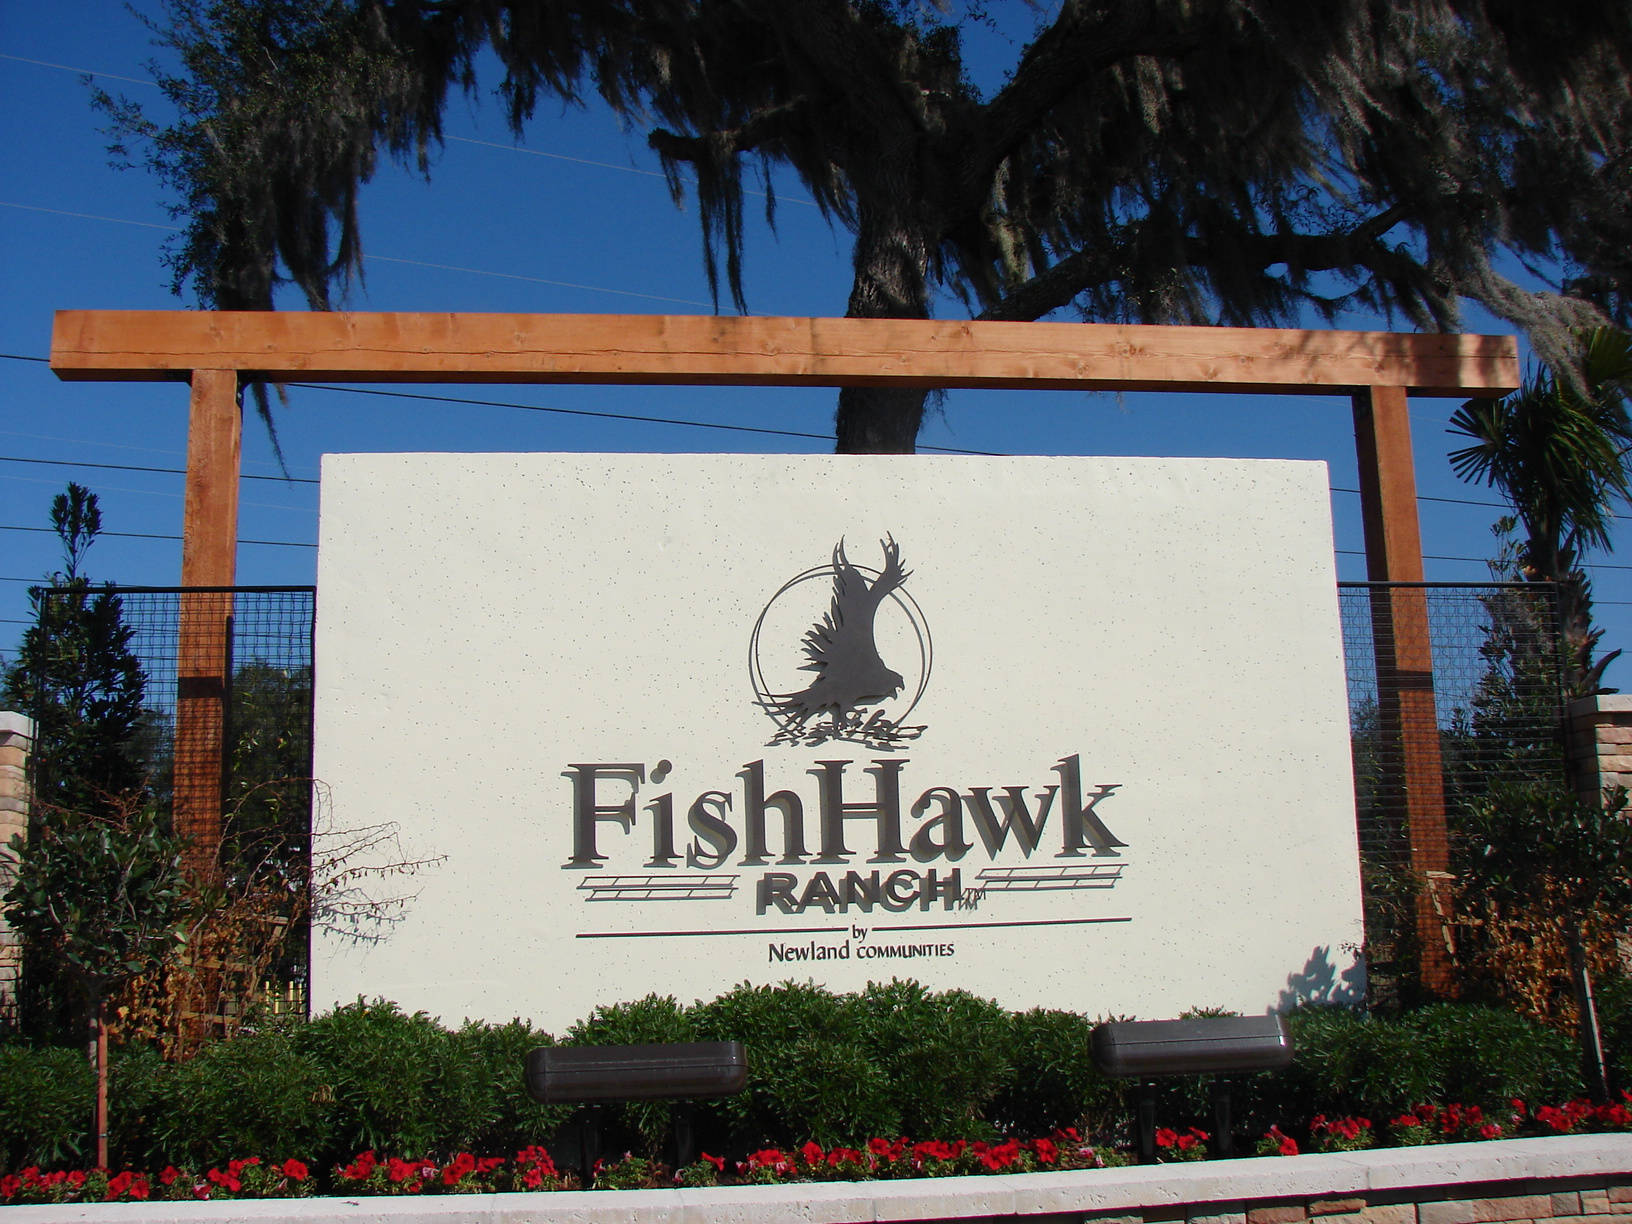 FishHawk Ranch New Town Home Community Lithia Florida